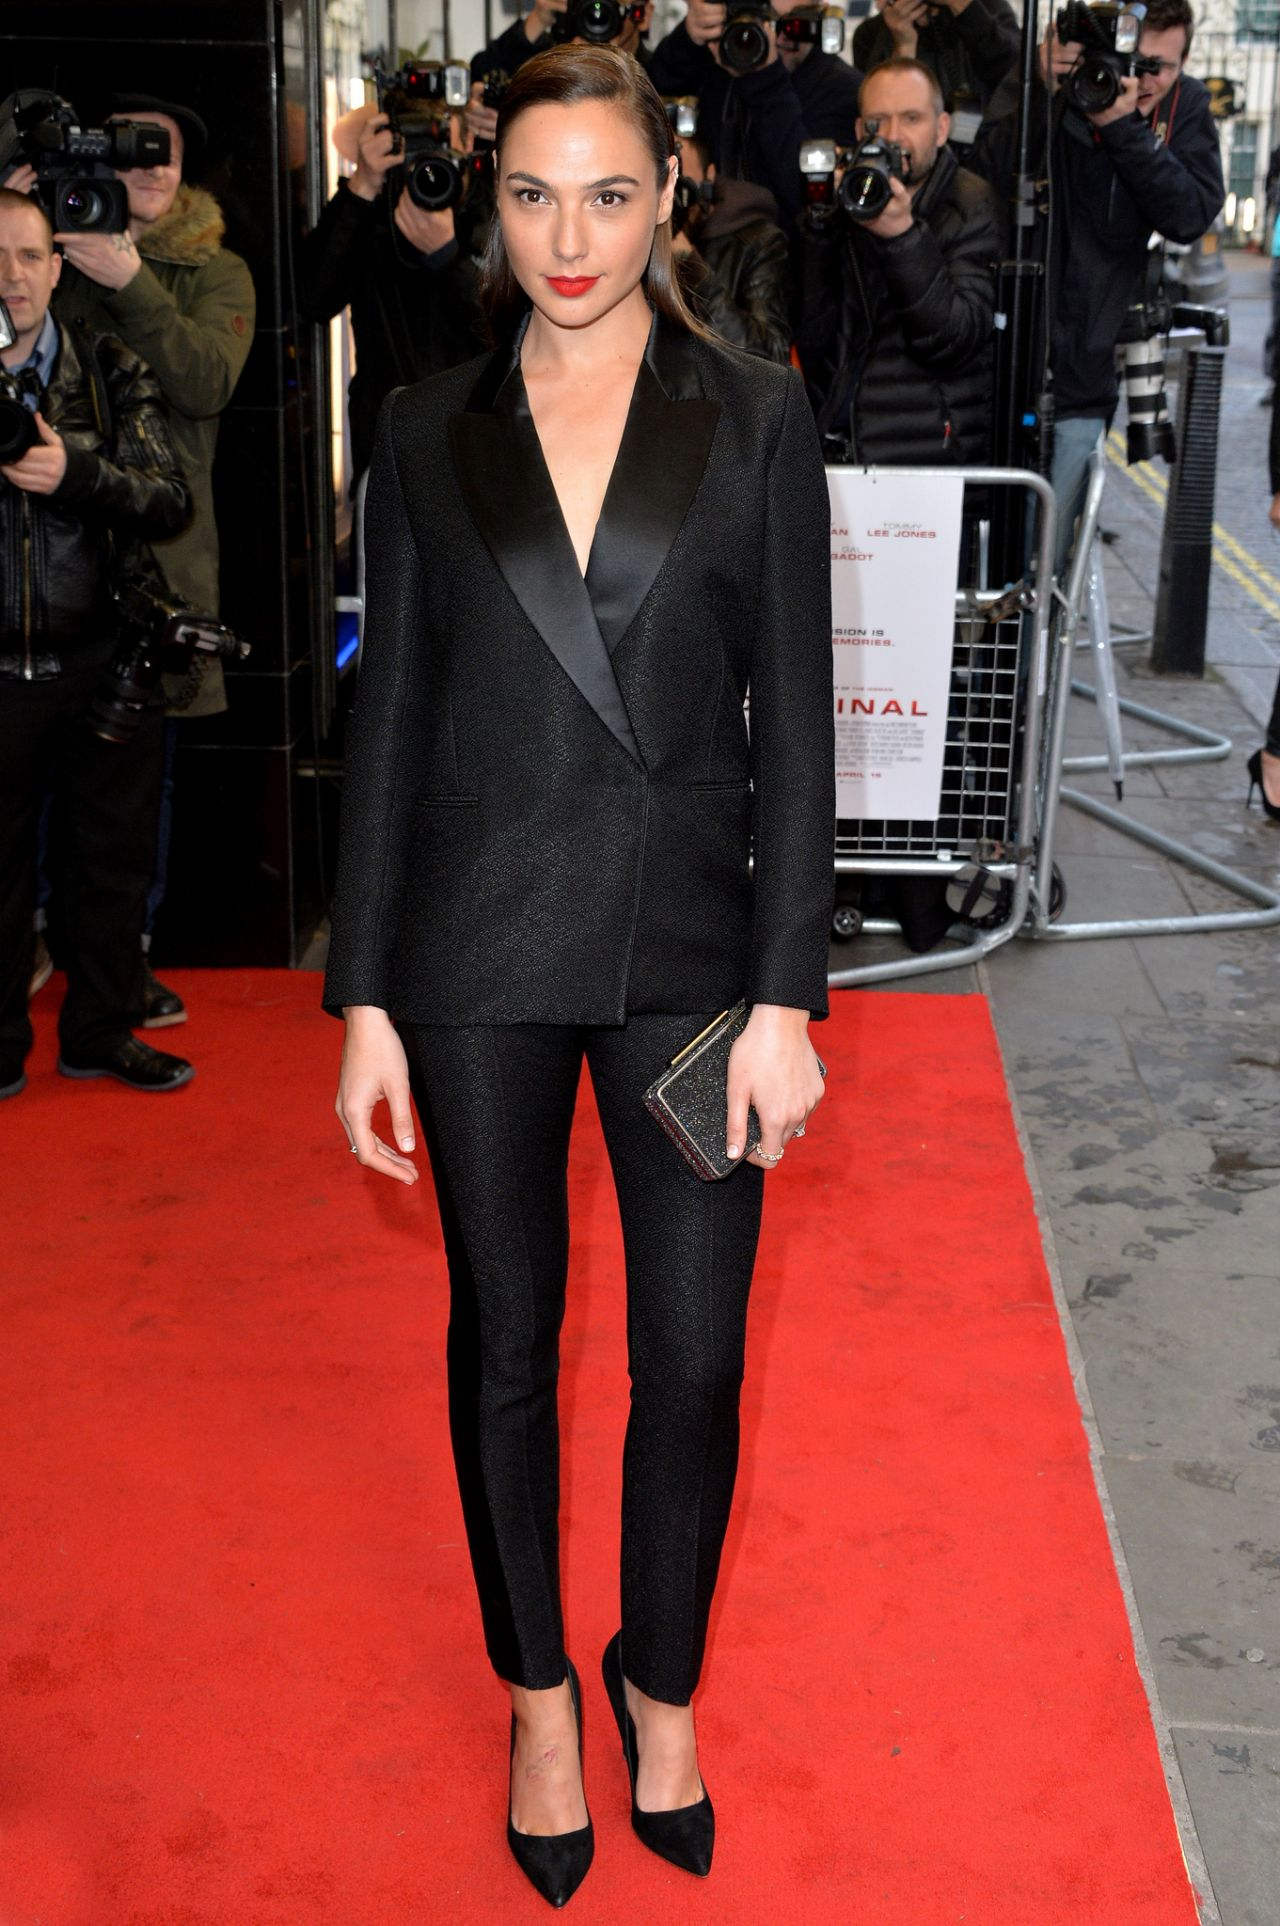 http://celebmafia.com/wp-content/uploads/2016/04/gal-gadot-criminal-premiere-in-london-uk-5.jpg